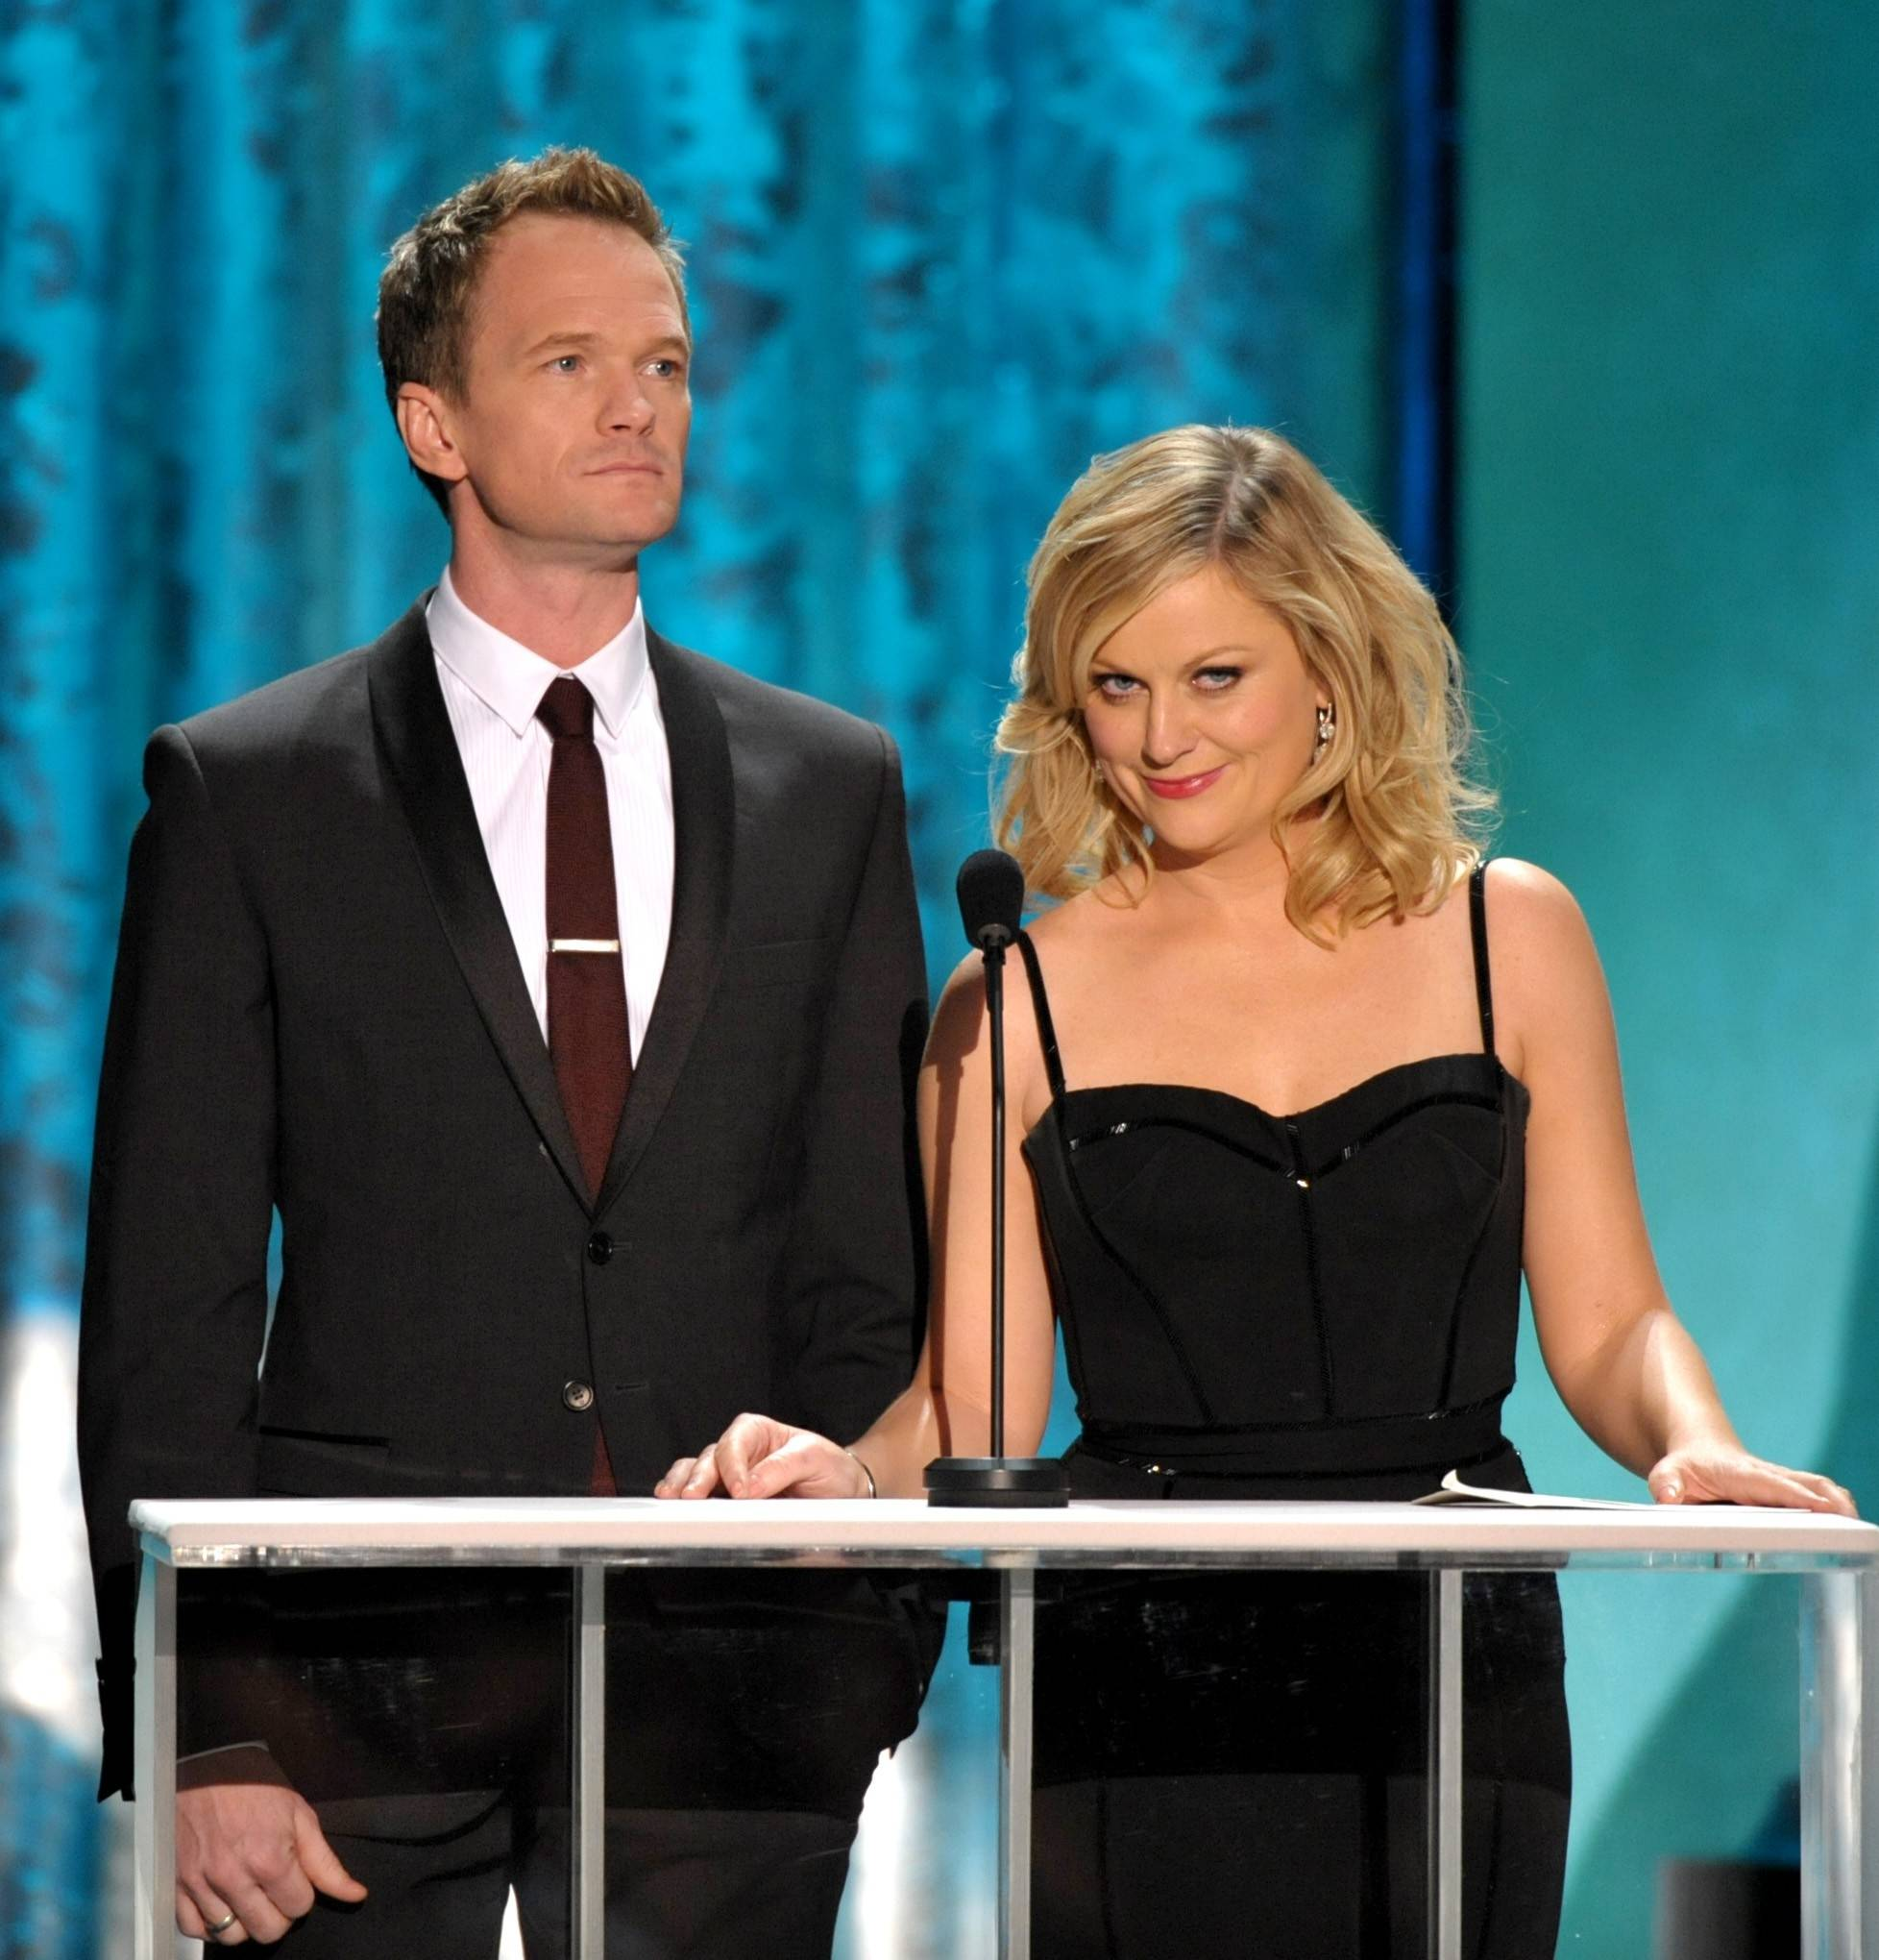 """How I Met Your Mother"" star Neil Patrick Harris and ""Parks and Rec"" star Any Poehler do their presenting shtick at the SAG Awards."